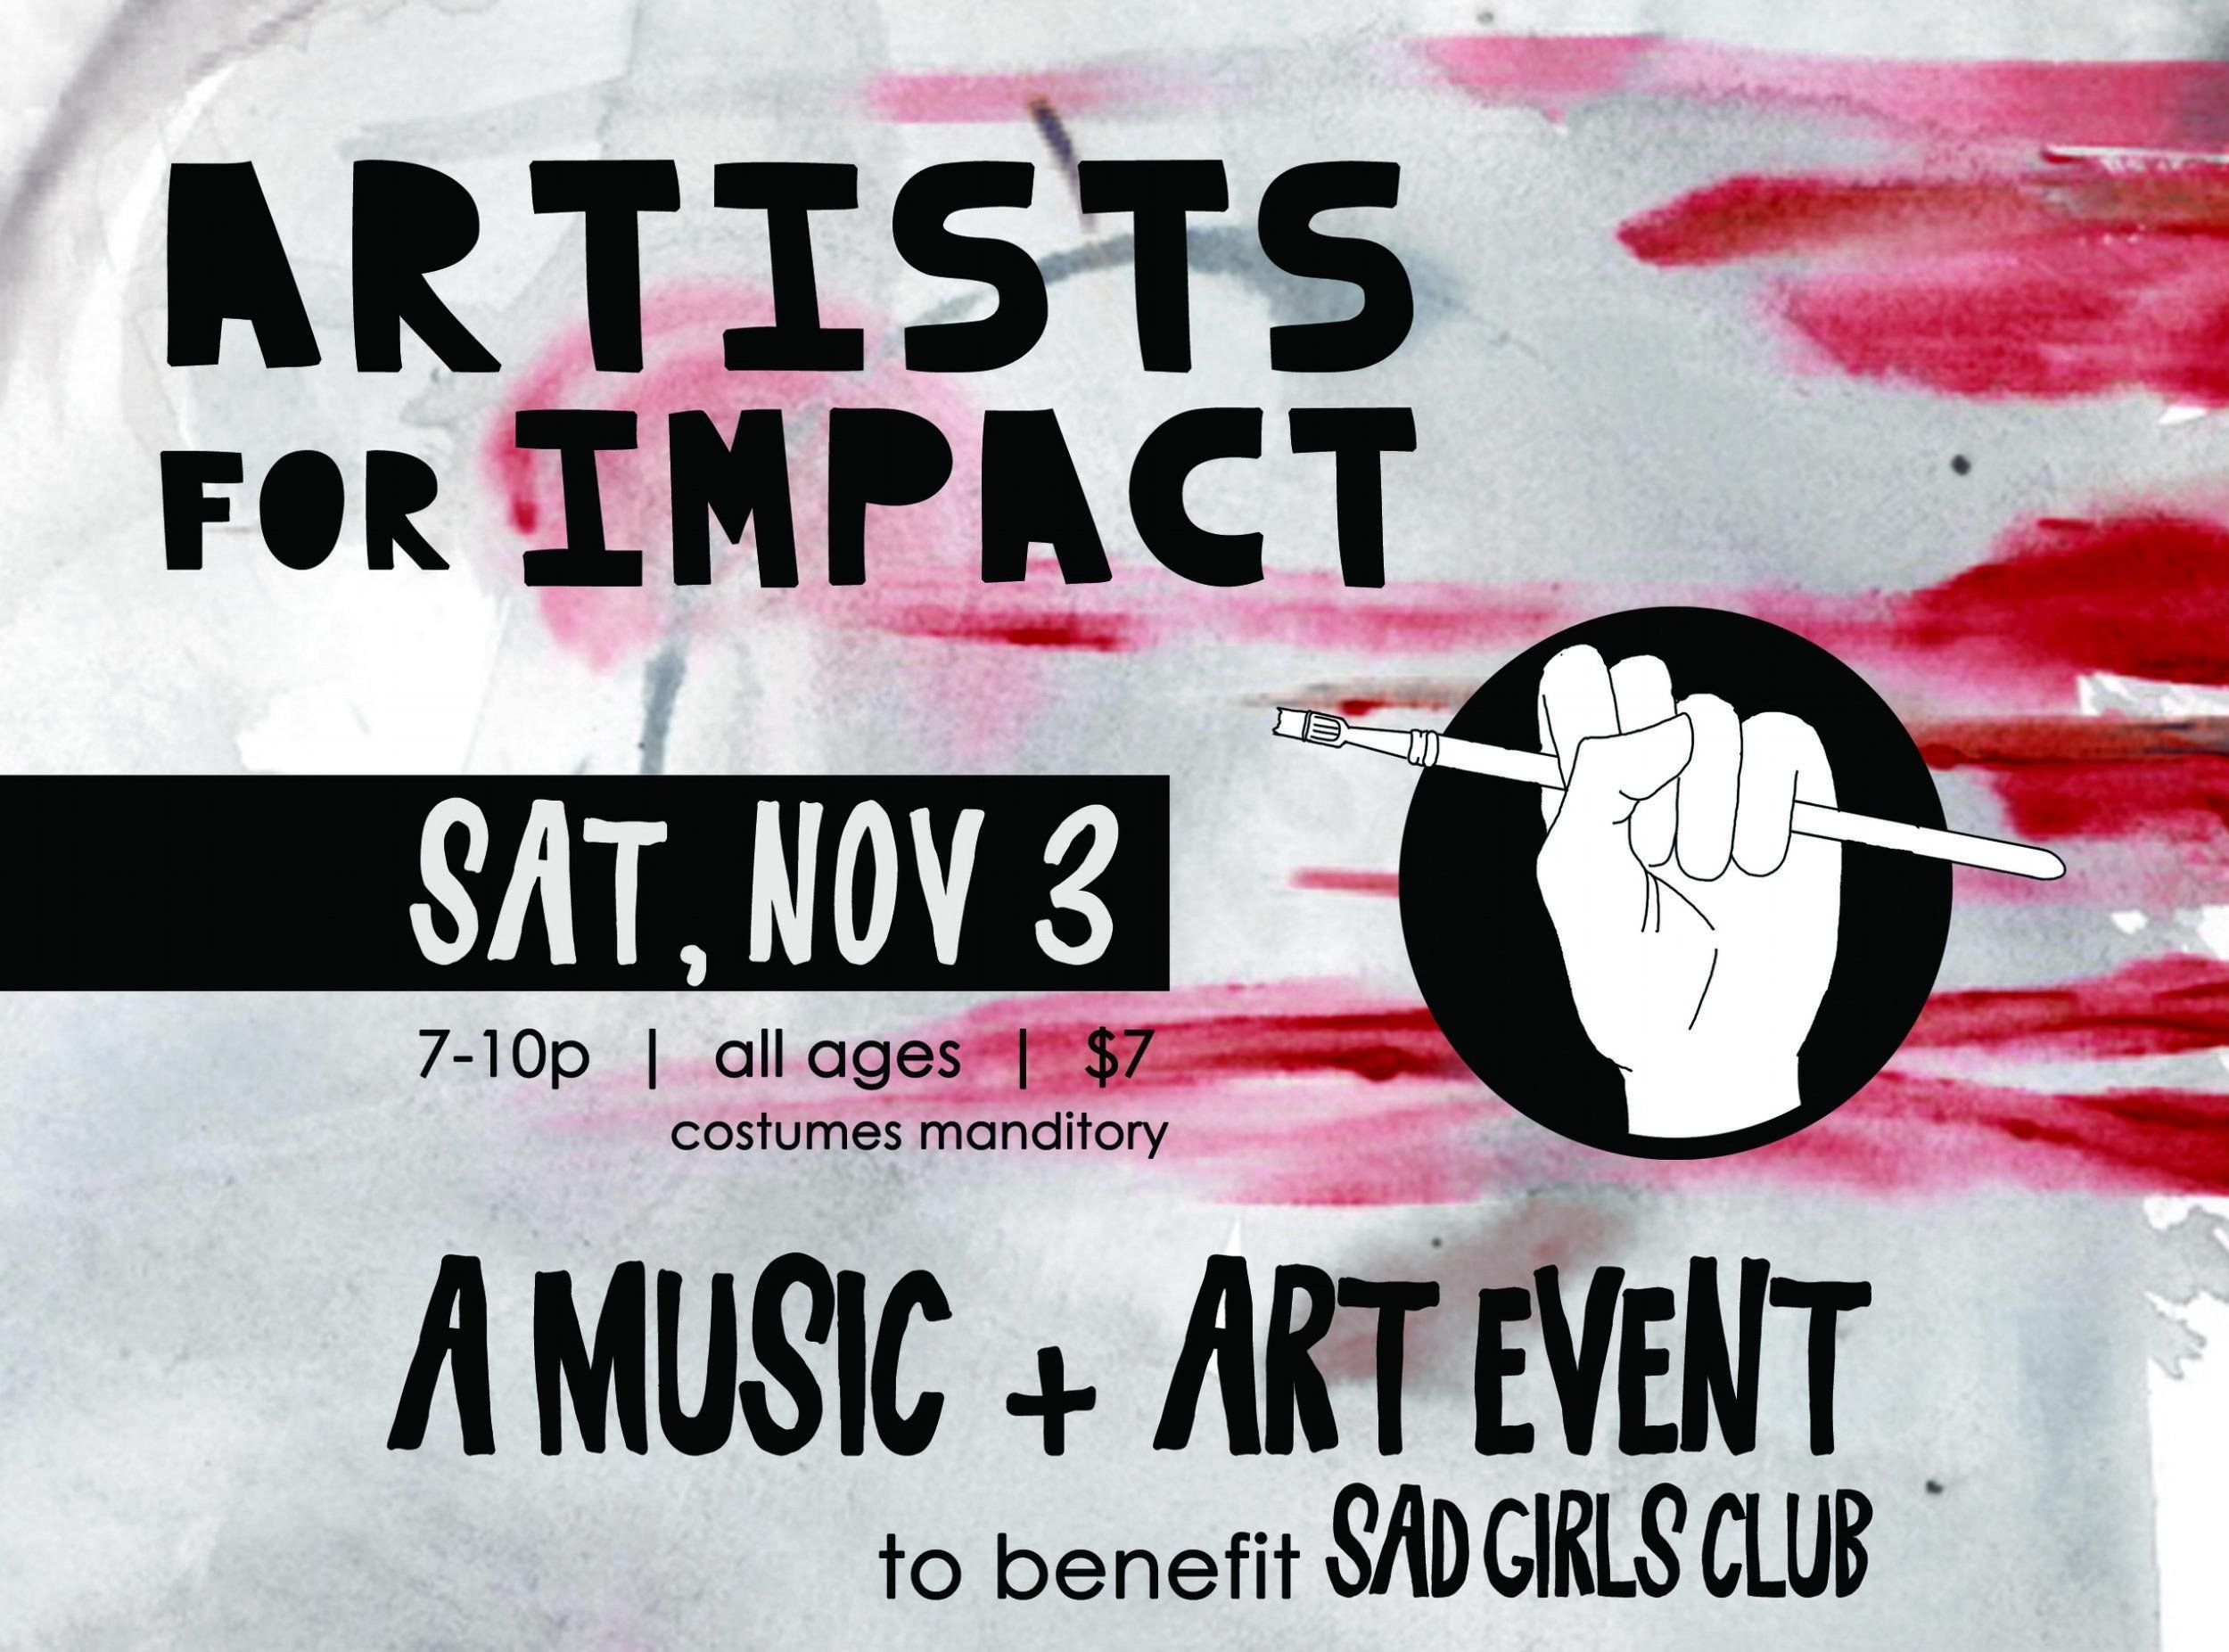 artists_for_impact_11_03_2018.jpg